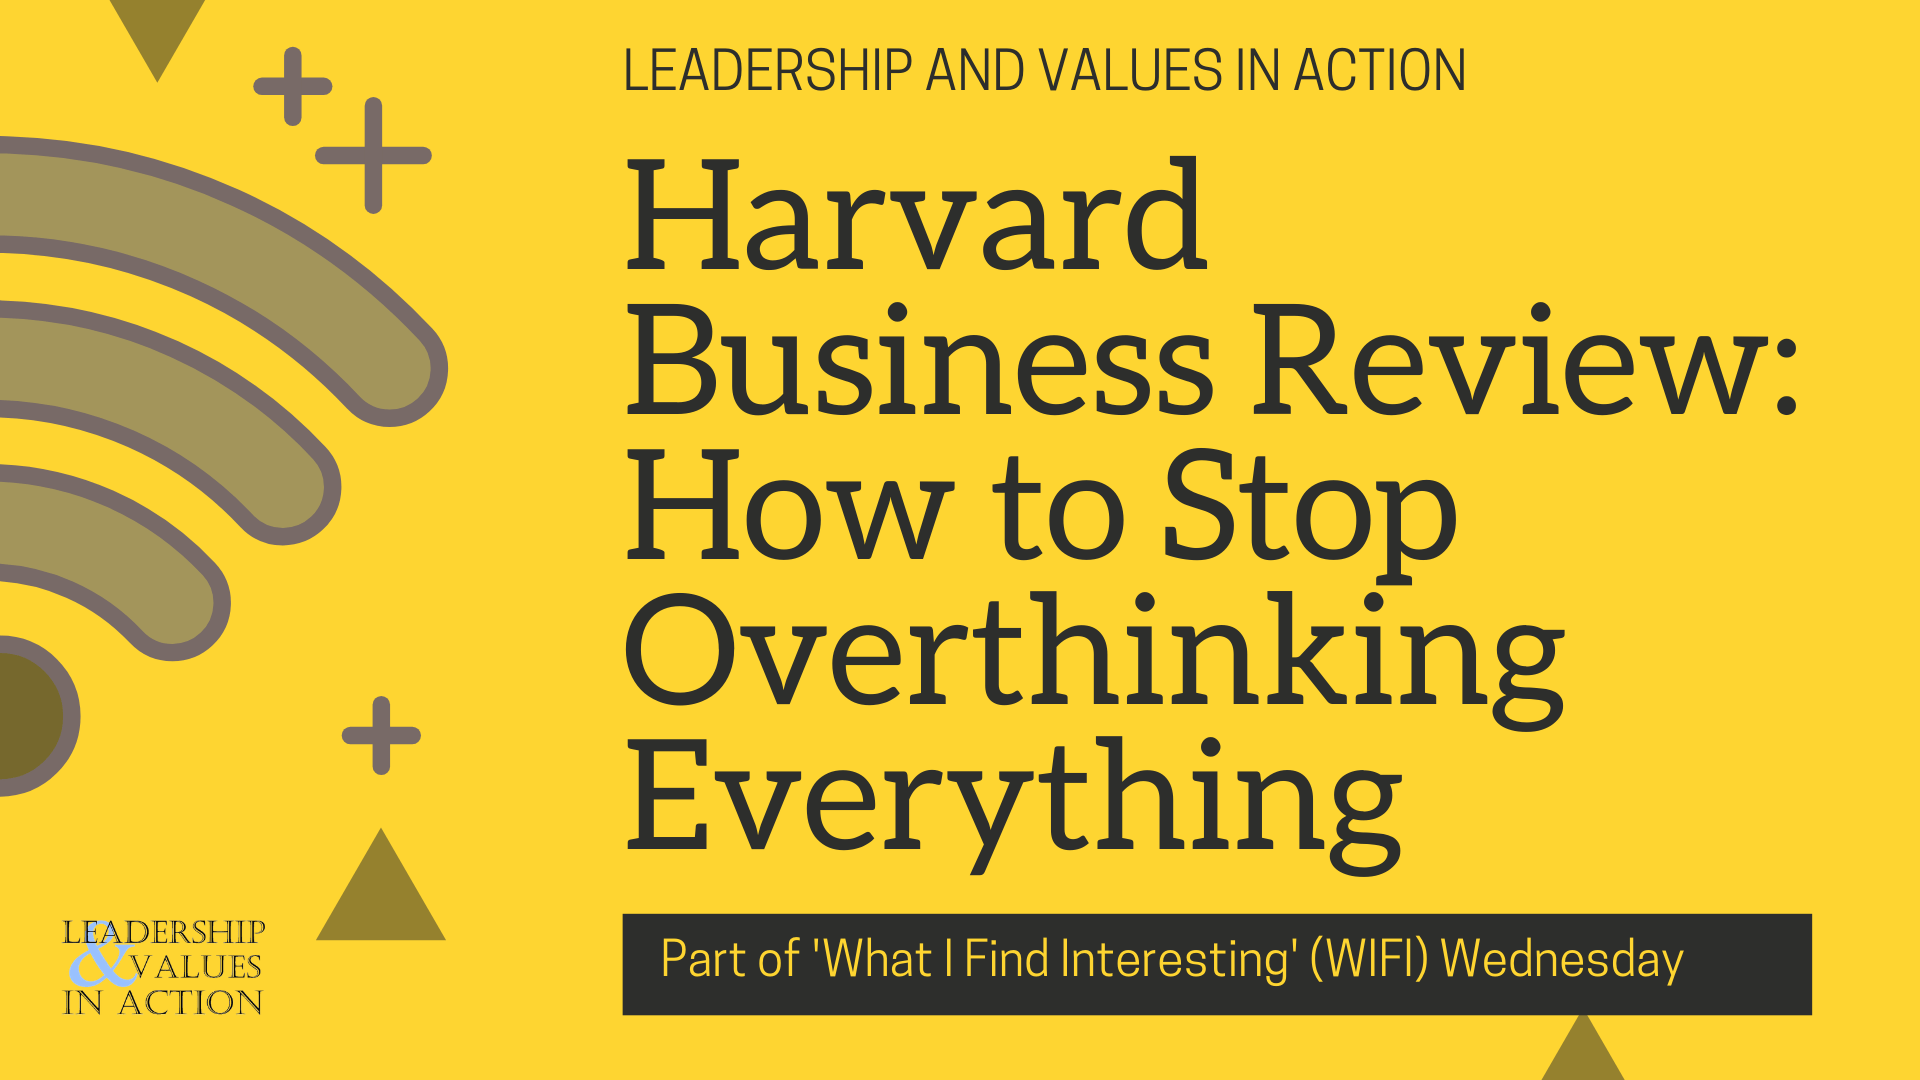 Harvard Business Review: How to Stop Overthinking Everything